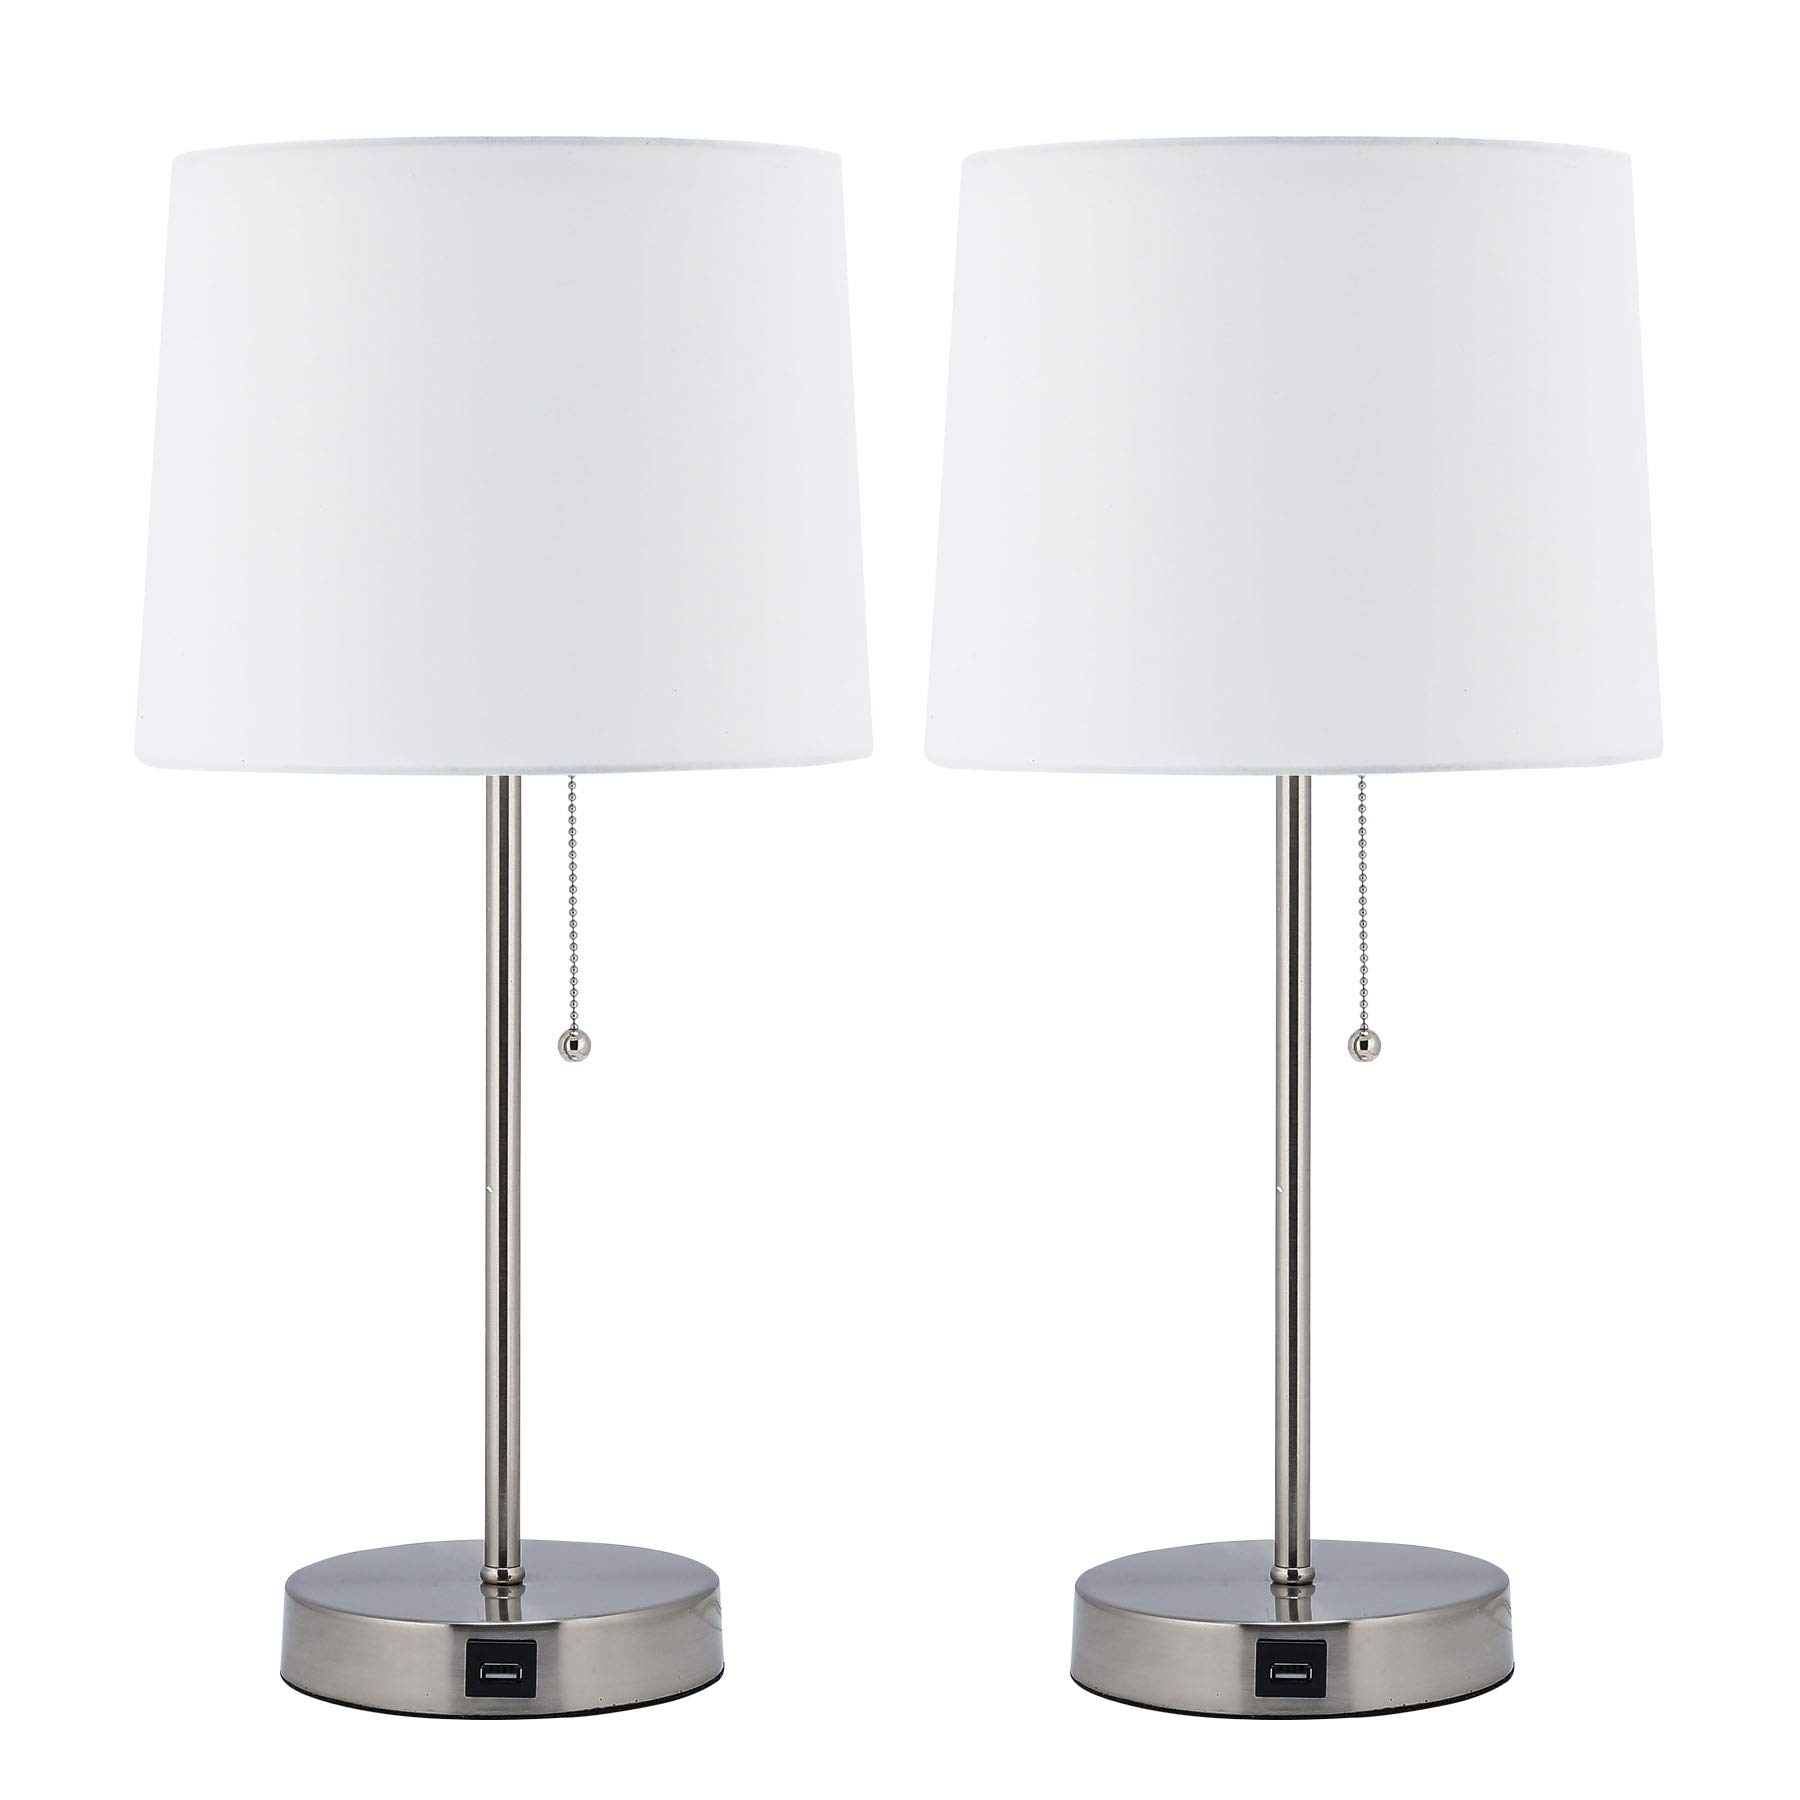 CO-Z White Table Lamp with USB Charger Set of 2, Modern Metal Desk Lamp in Brushed Nickel Finish, 21'' Height Beside Lamp for Office Bedroom Nightstand Accent, UL Certificate.